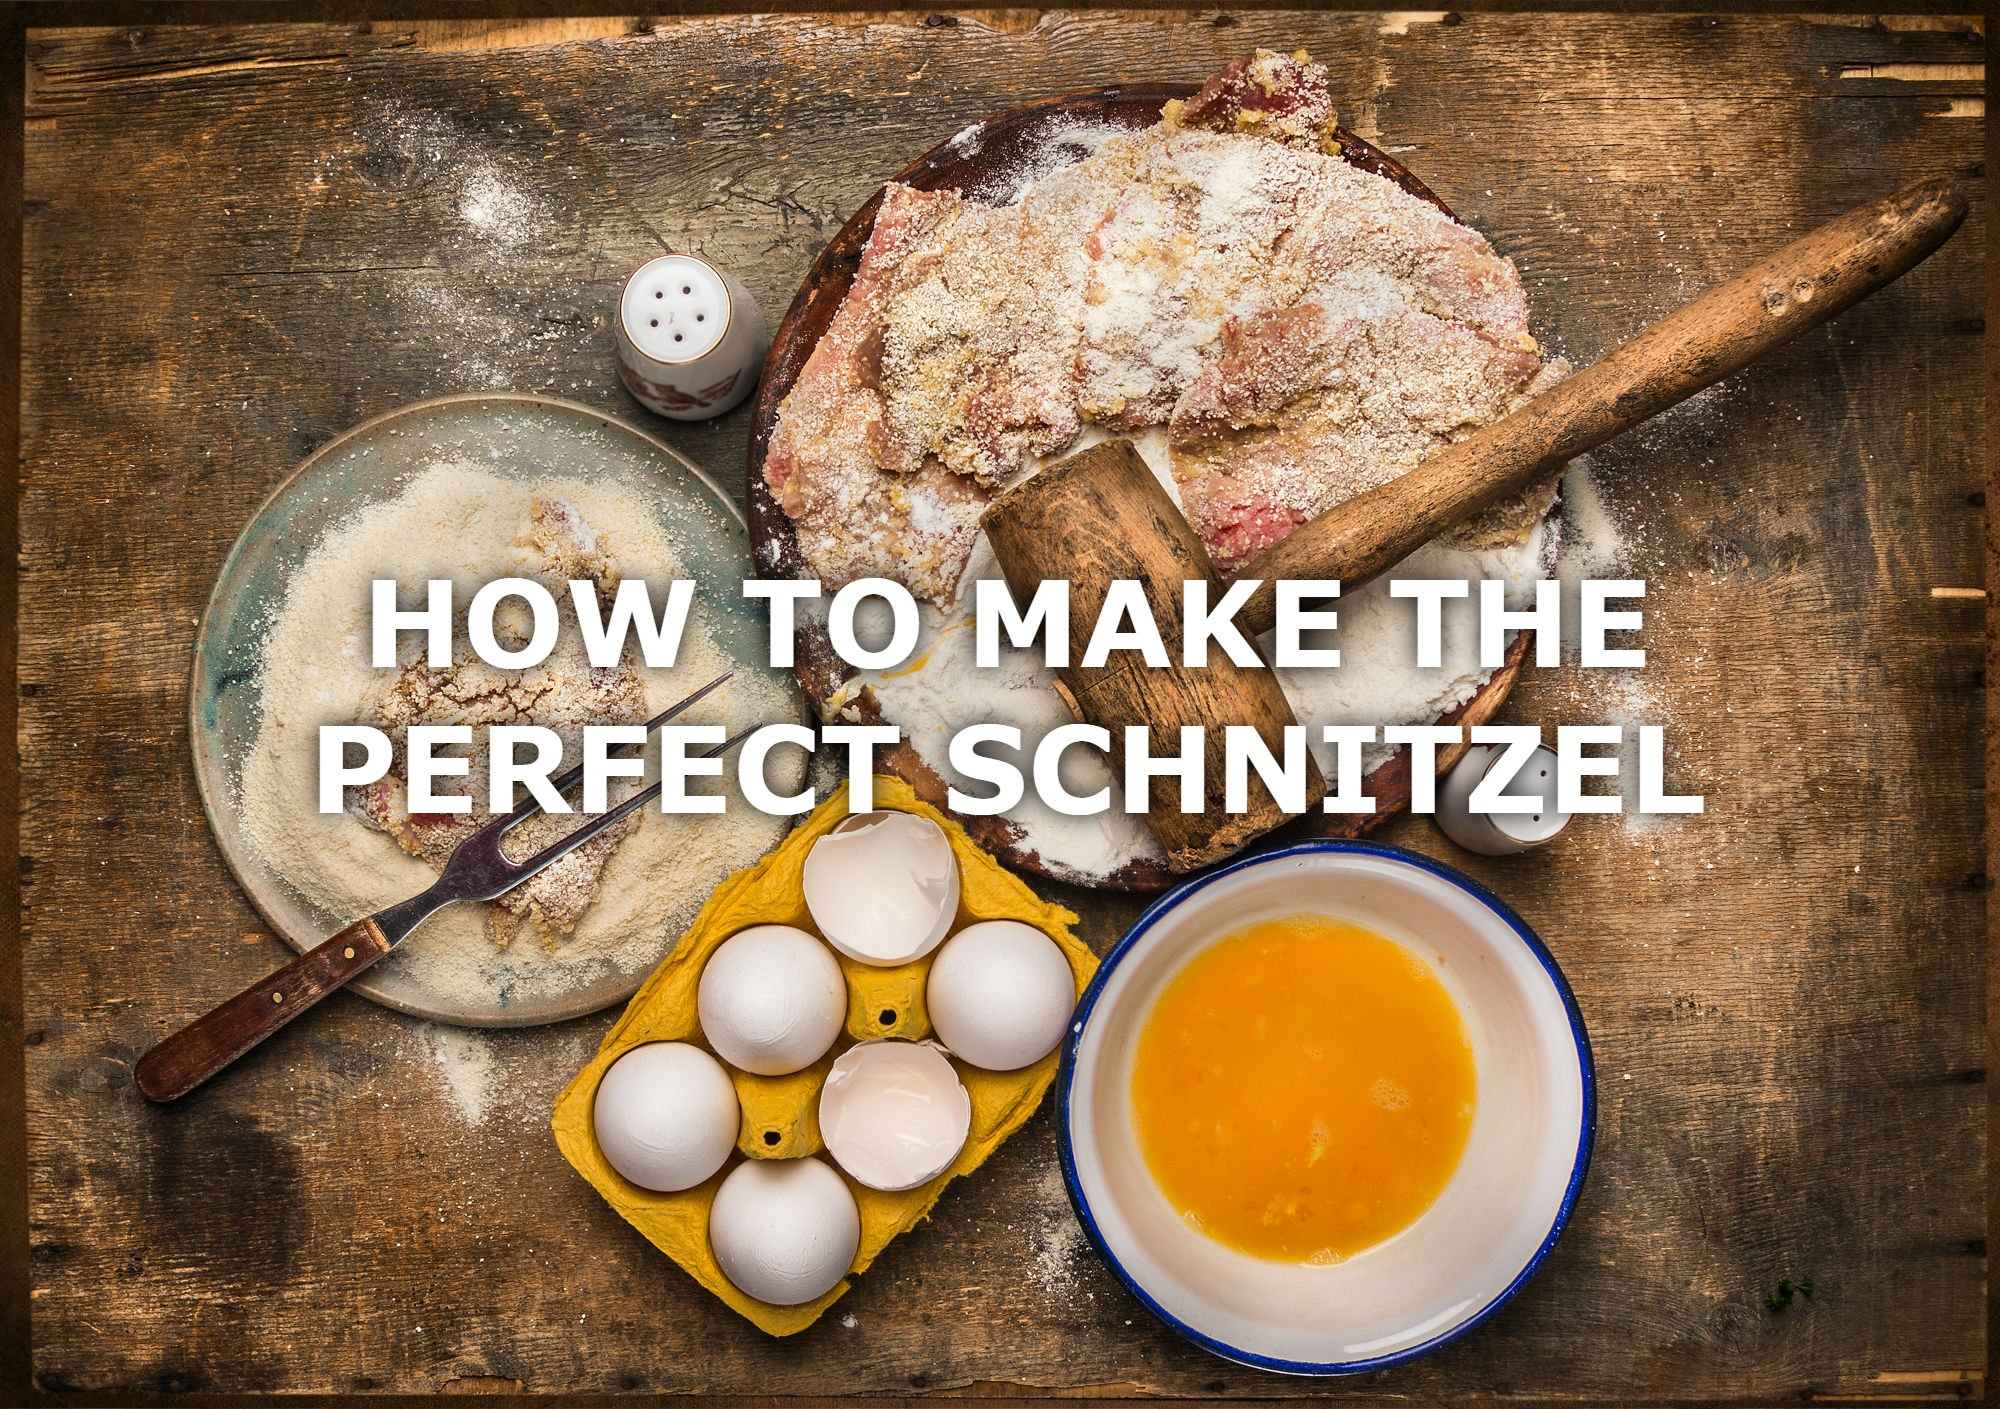 HOW TO MAKE THE PERFECT SCHNITZEL